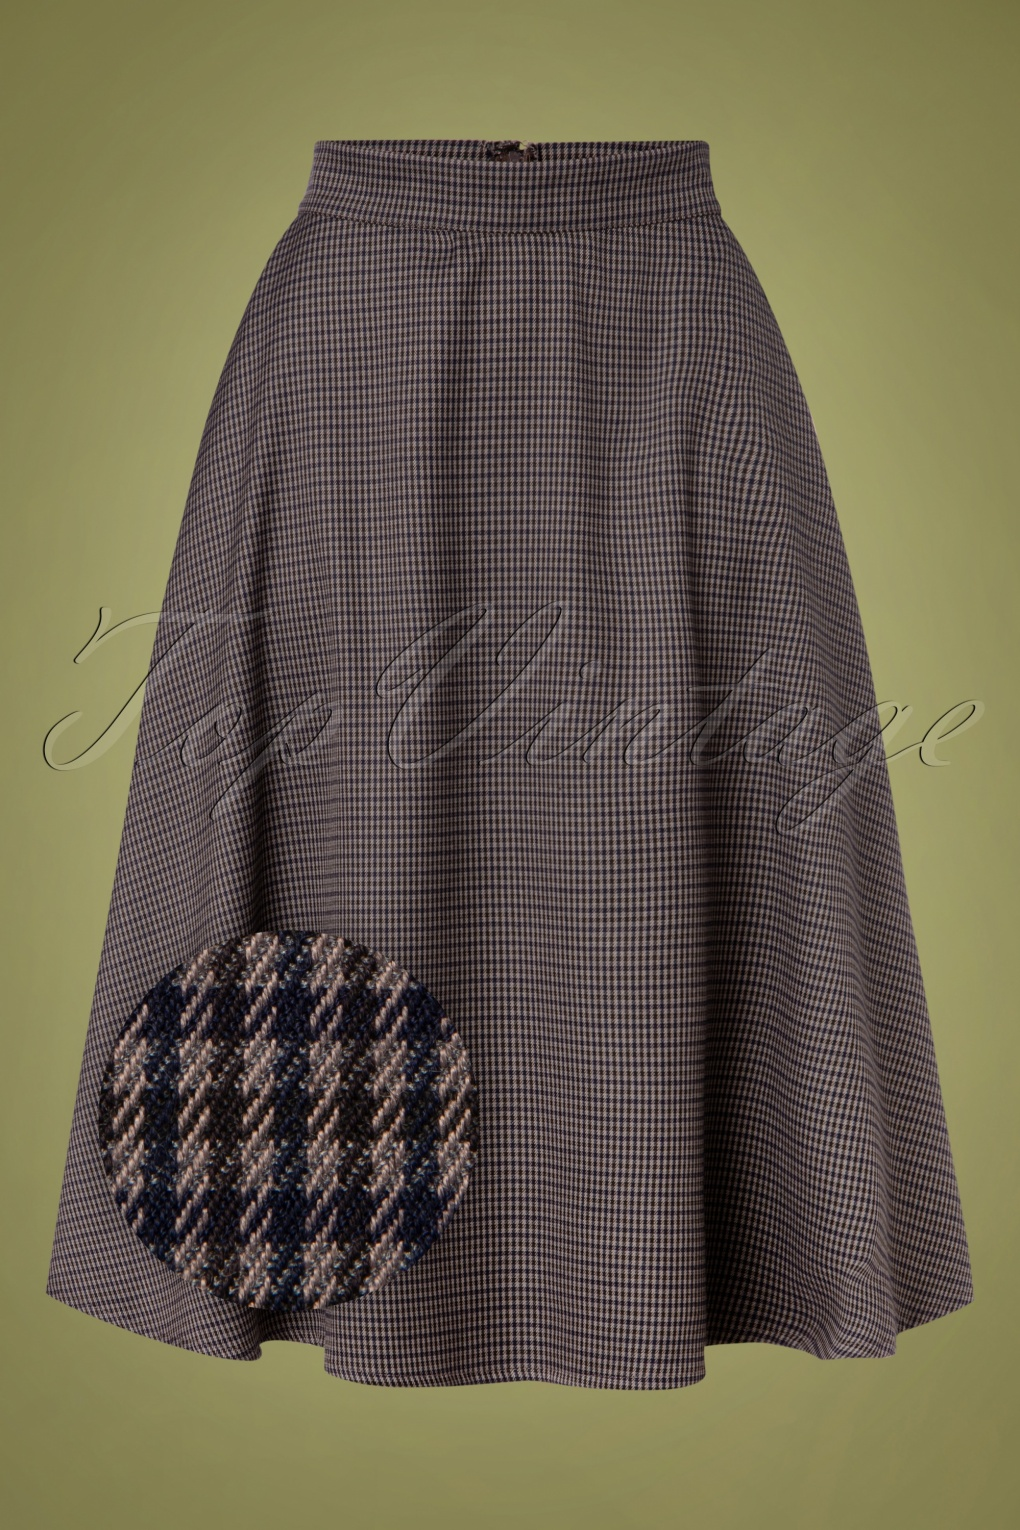 Cottagecore Clothing, Soft Aesthetic 40s Cute Check Mate Swing Skirt in Grey £36.33 AT vintagedancer.com